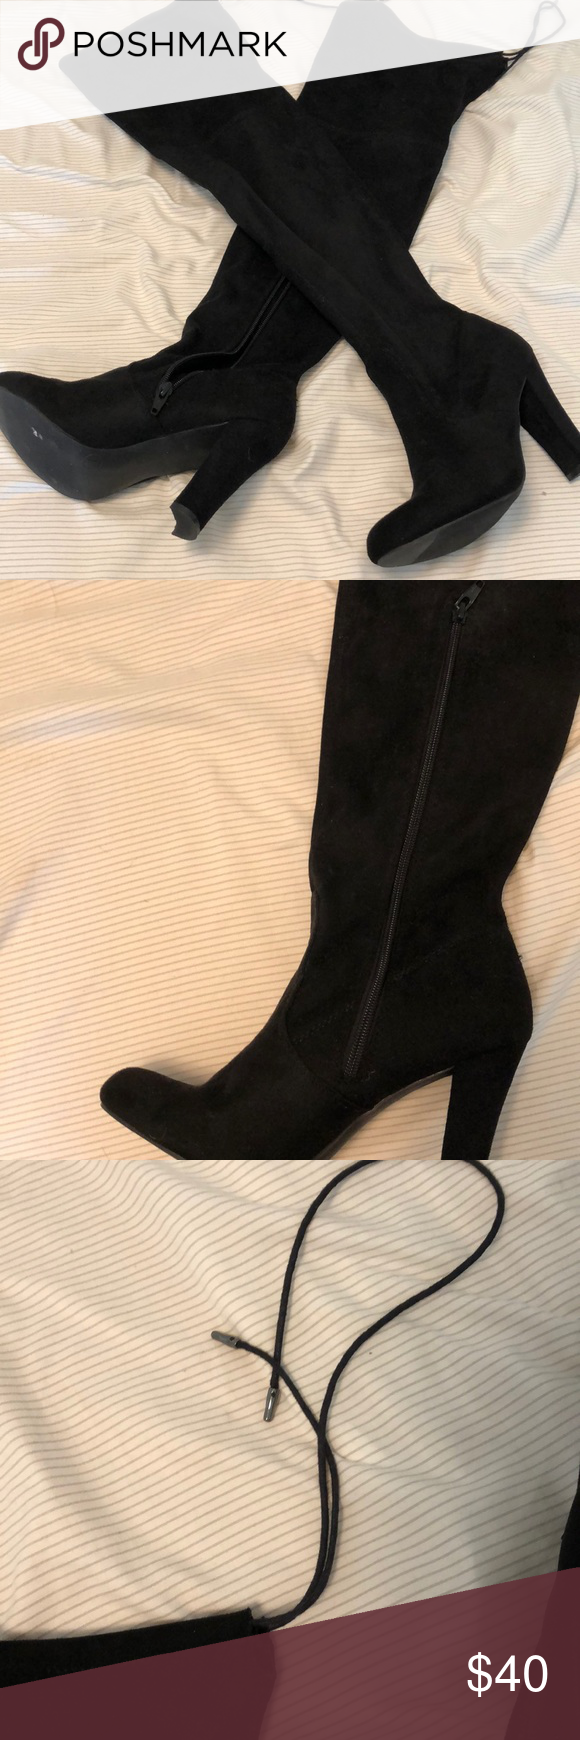 Knee high black suede heeled boots from